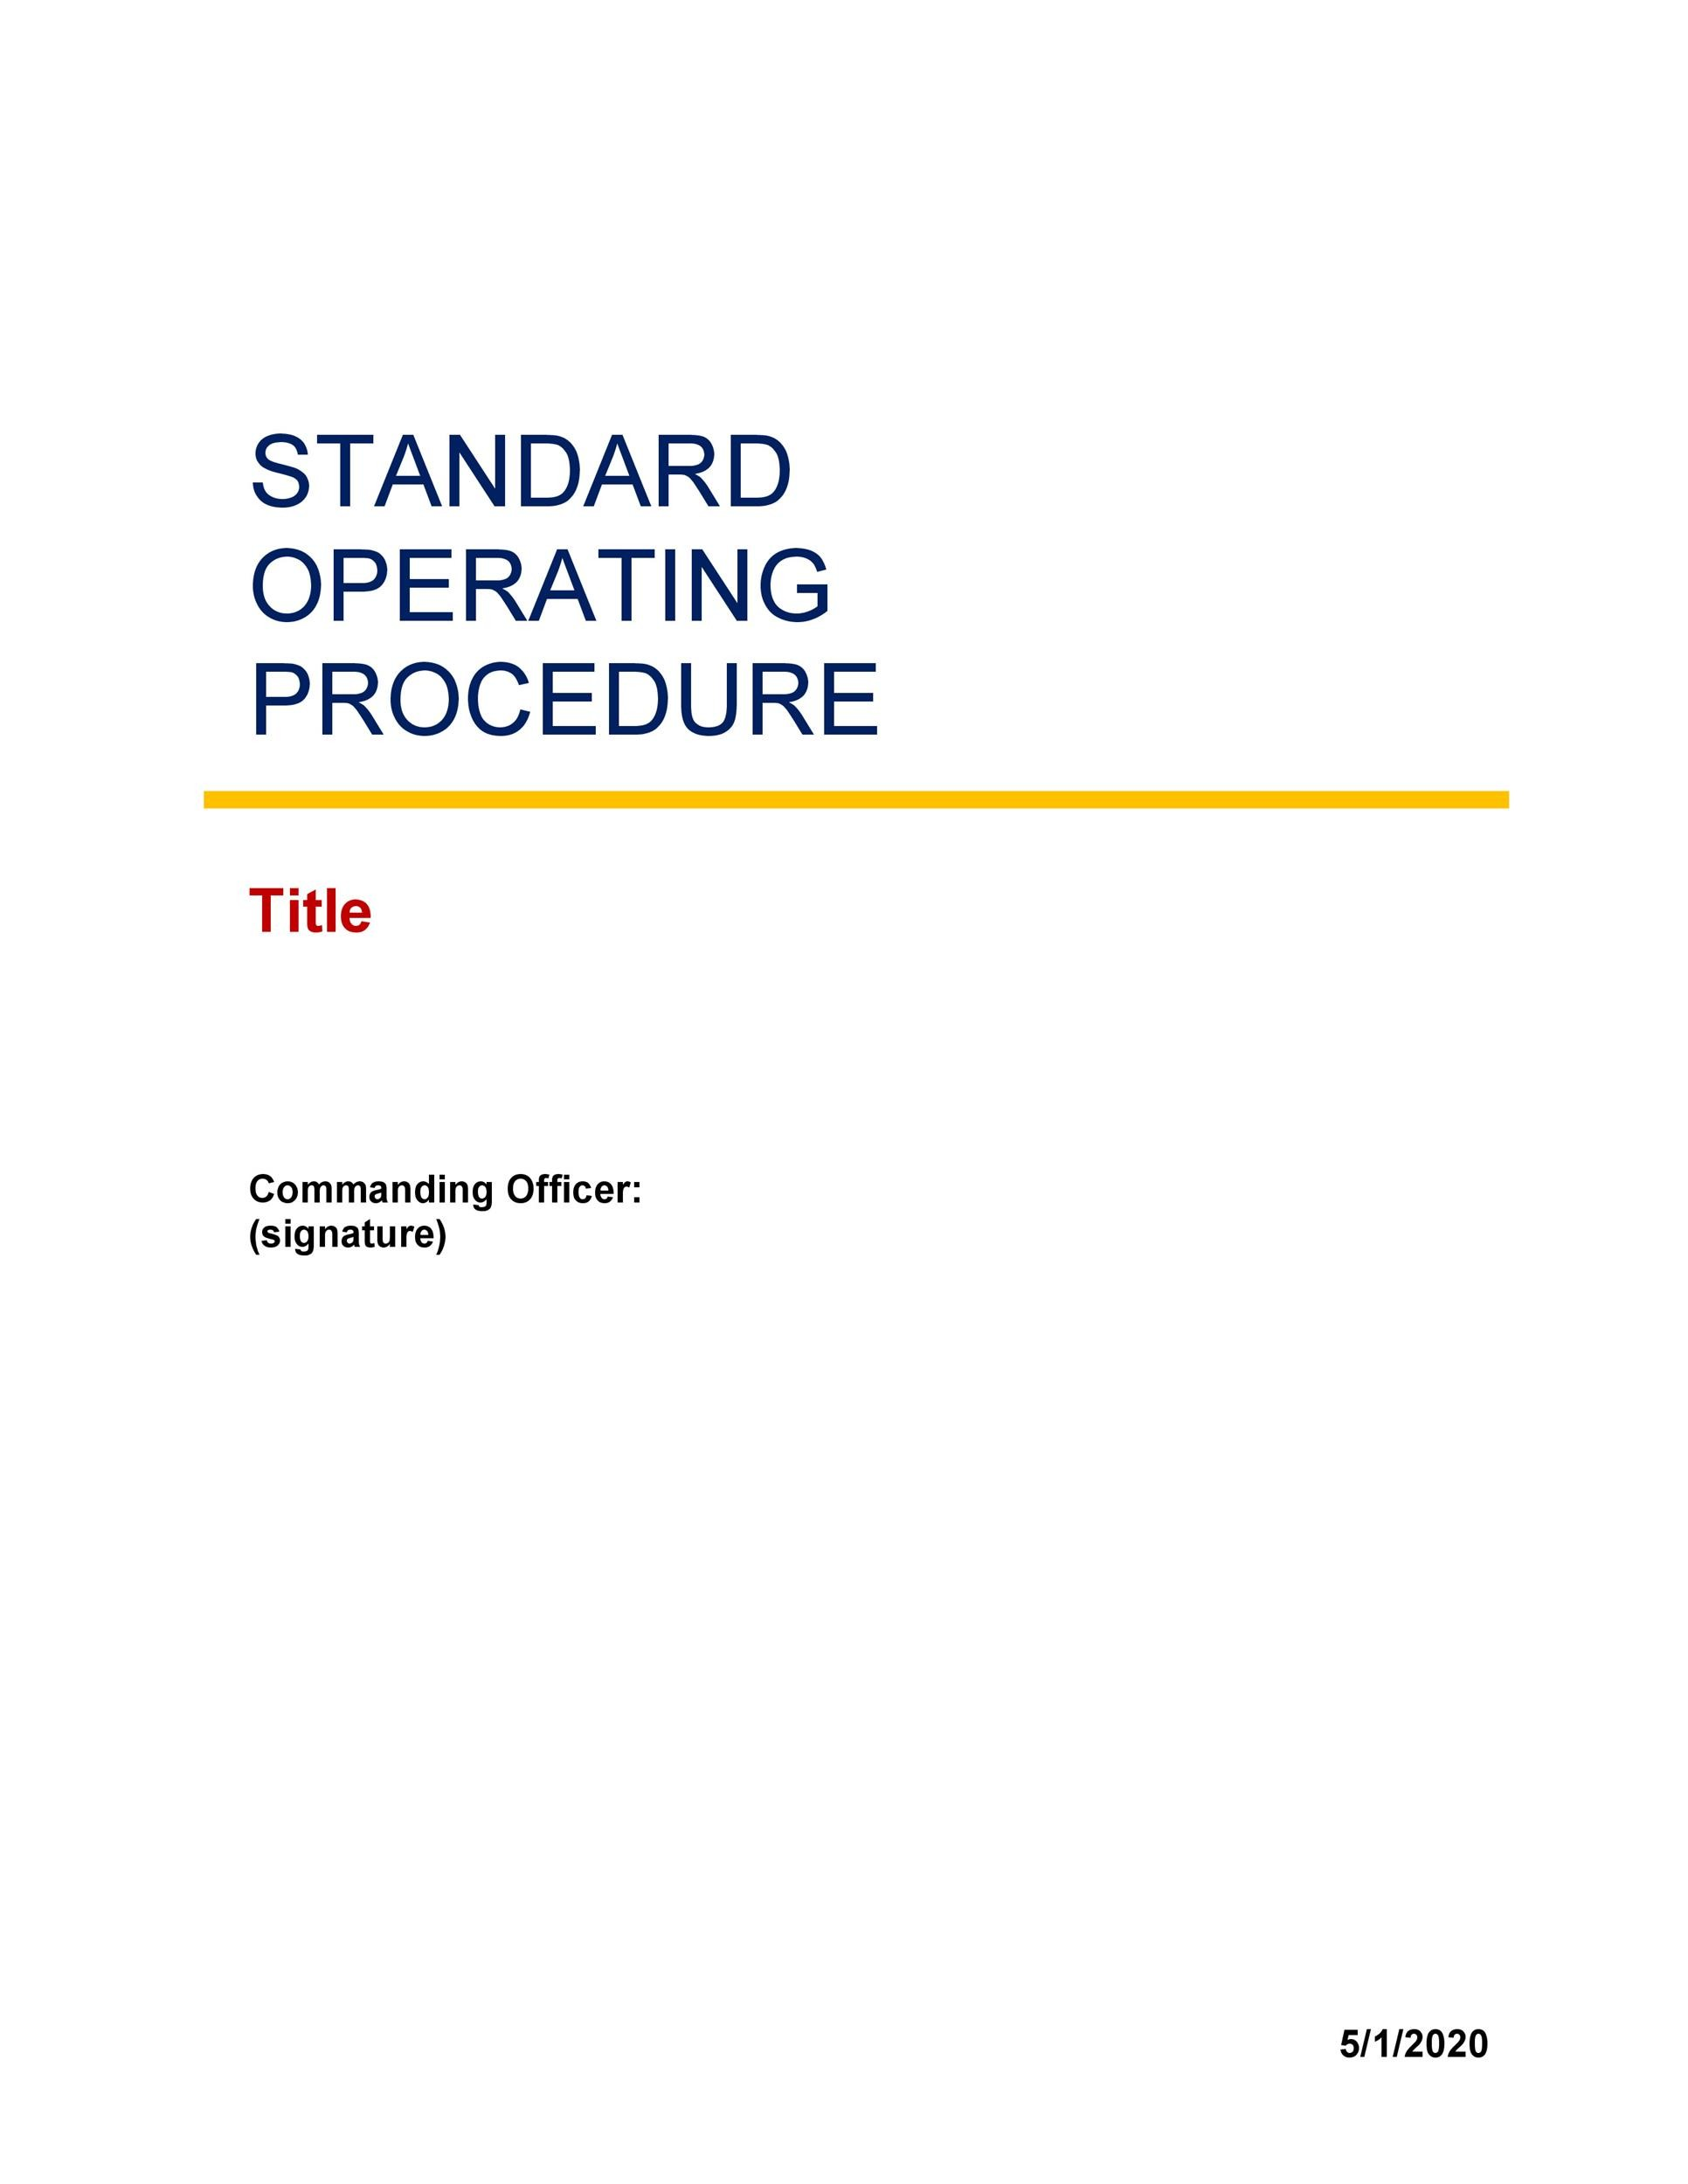 Standard Operating Procedure Templates